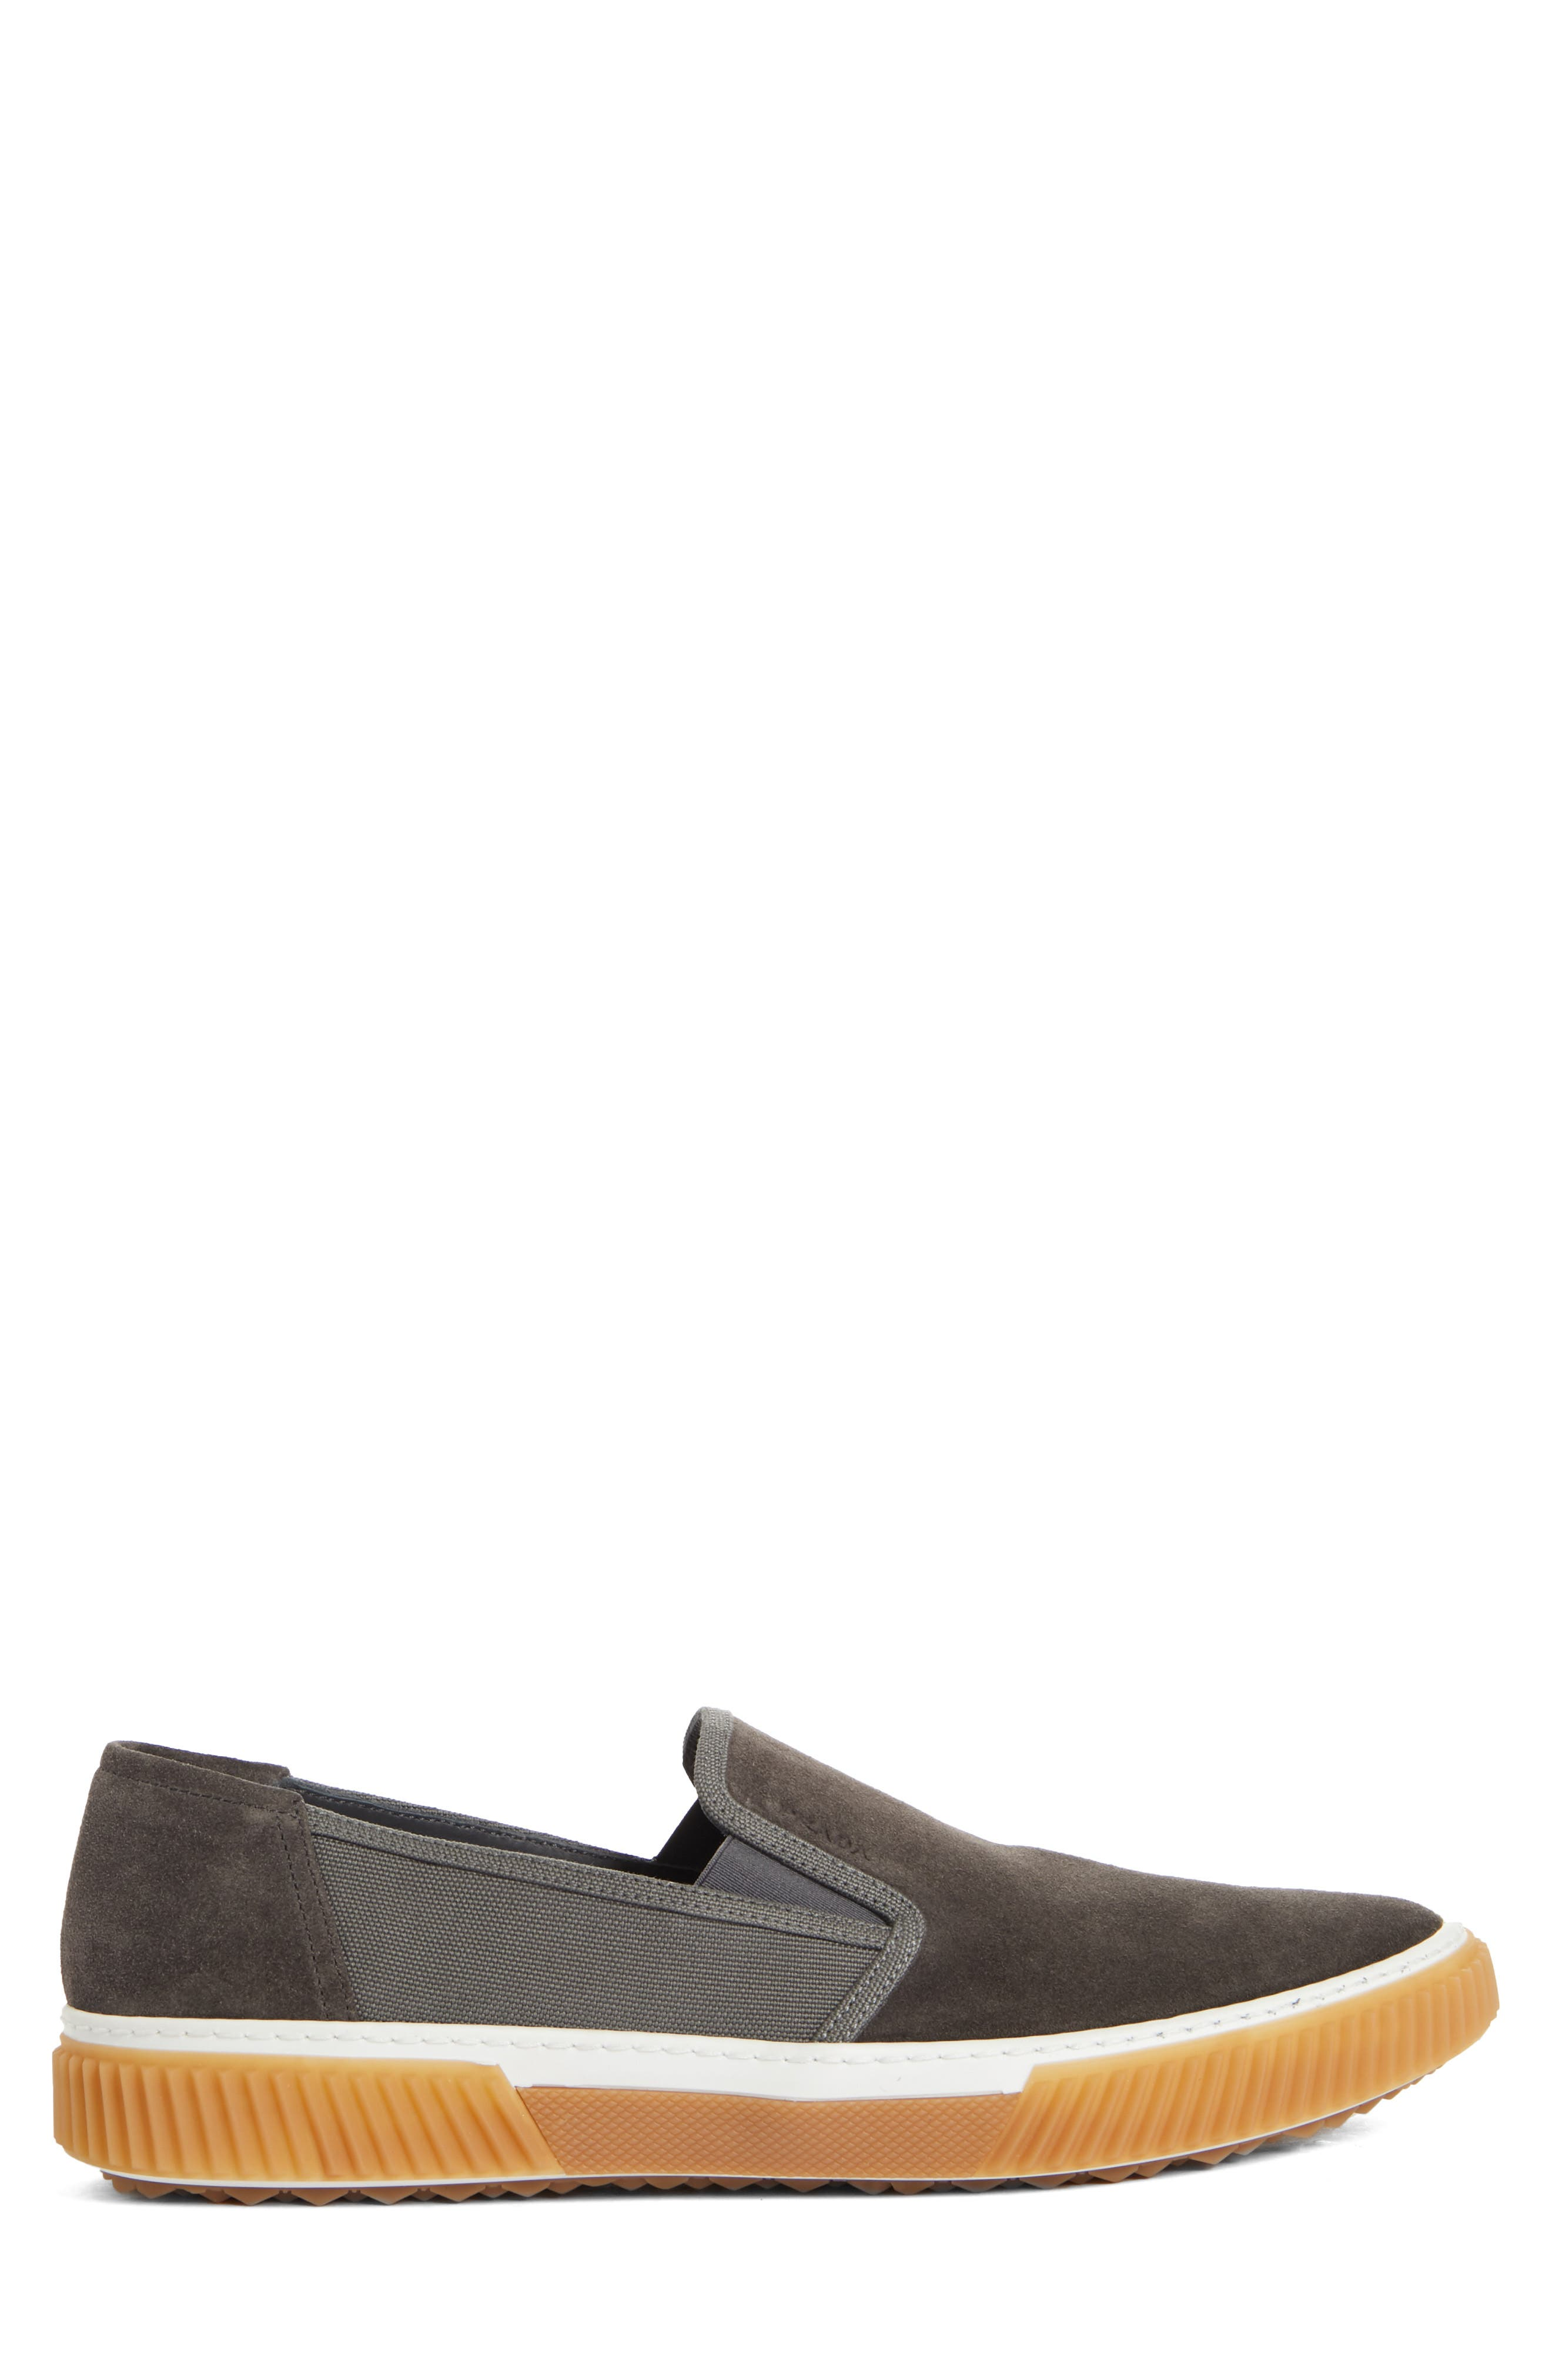 Linea Rossa Slip-On,                             Alternate thumbnail 3, color,                             GREY